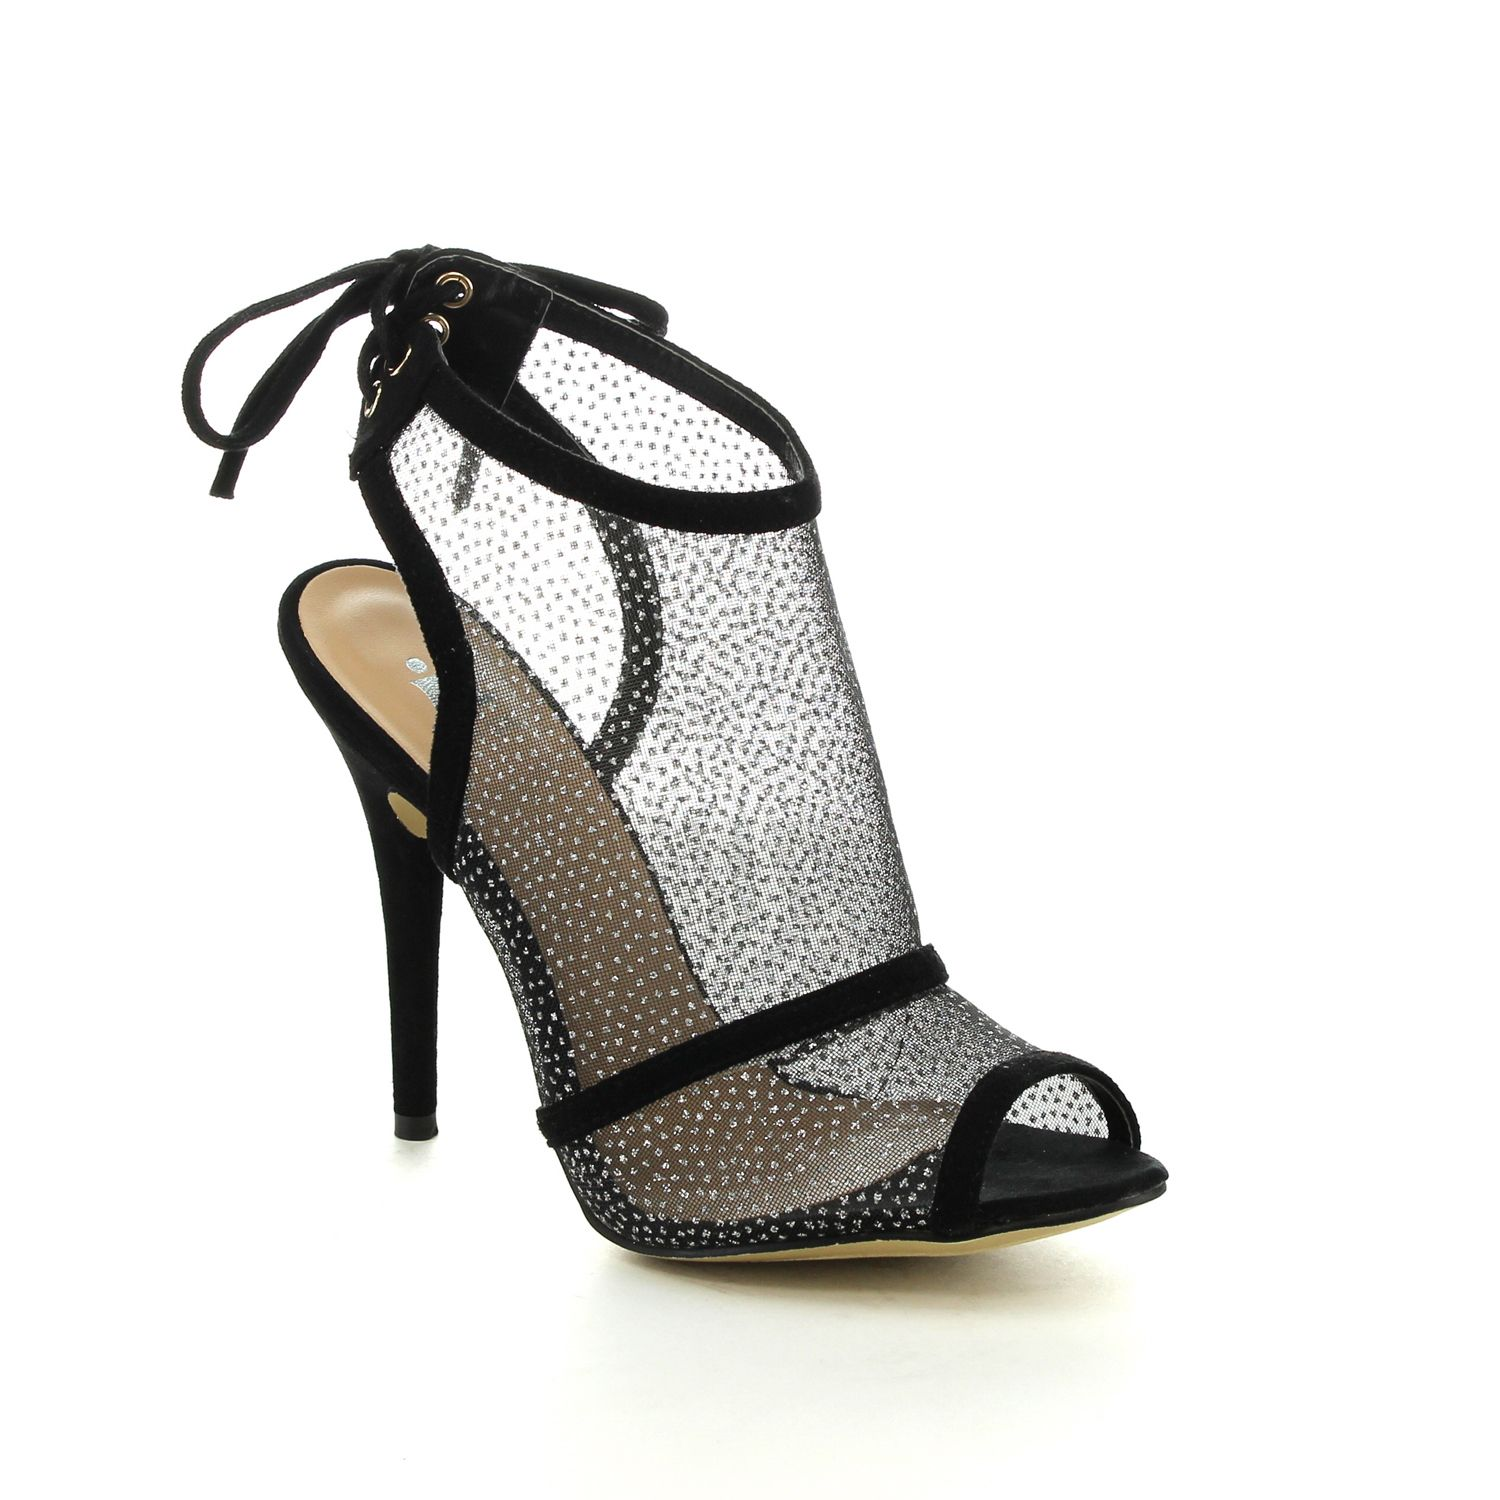 These high heel sandals featuring with see through fabric and lace loop on the back for your adjustment ,buy this considerate shoes while it's available. This shoe runs one and half size smaller than regular size.